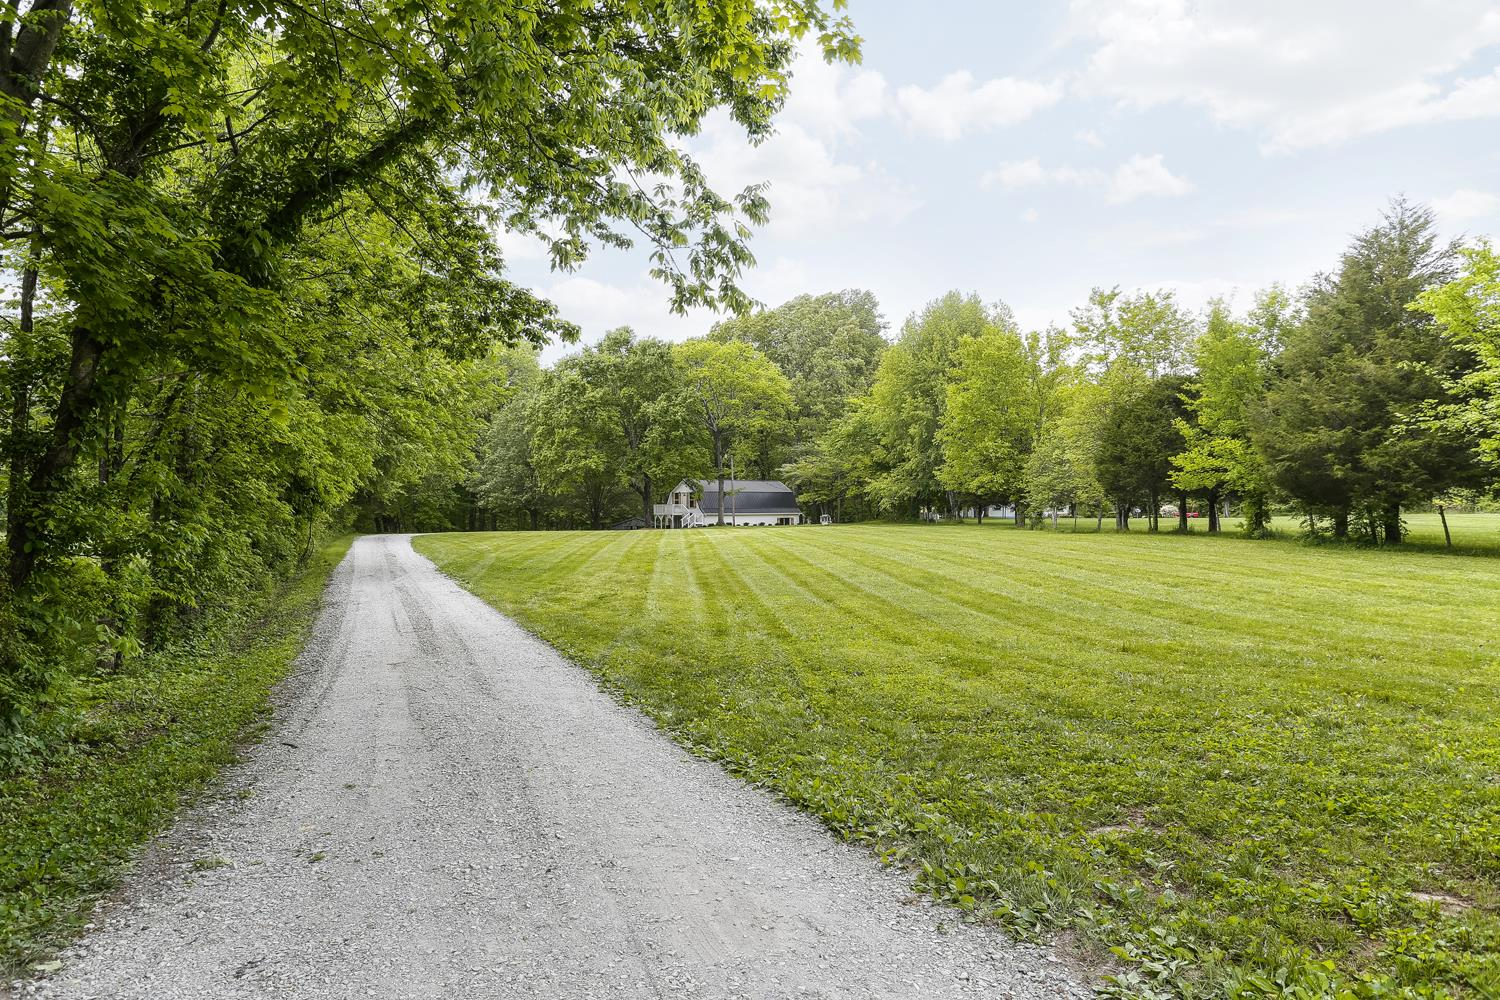 255 South Rd, Cottontown, TN 37048 - Cottontown, TN real estate listing